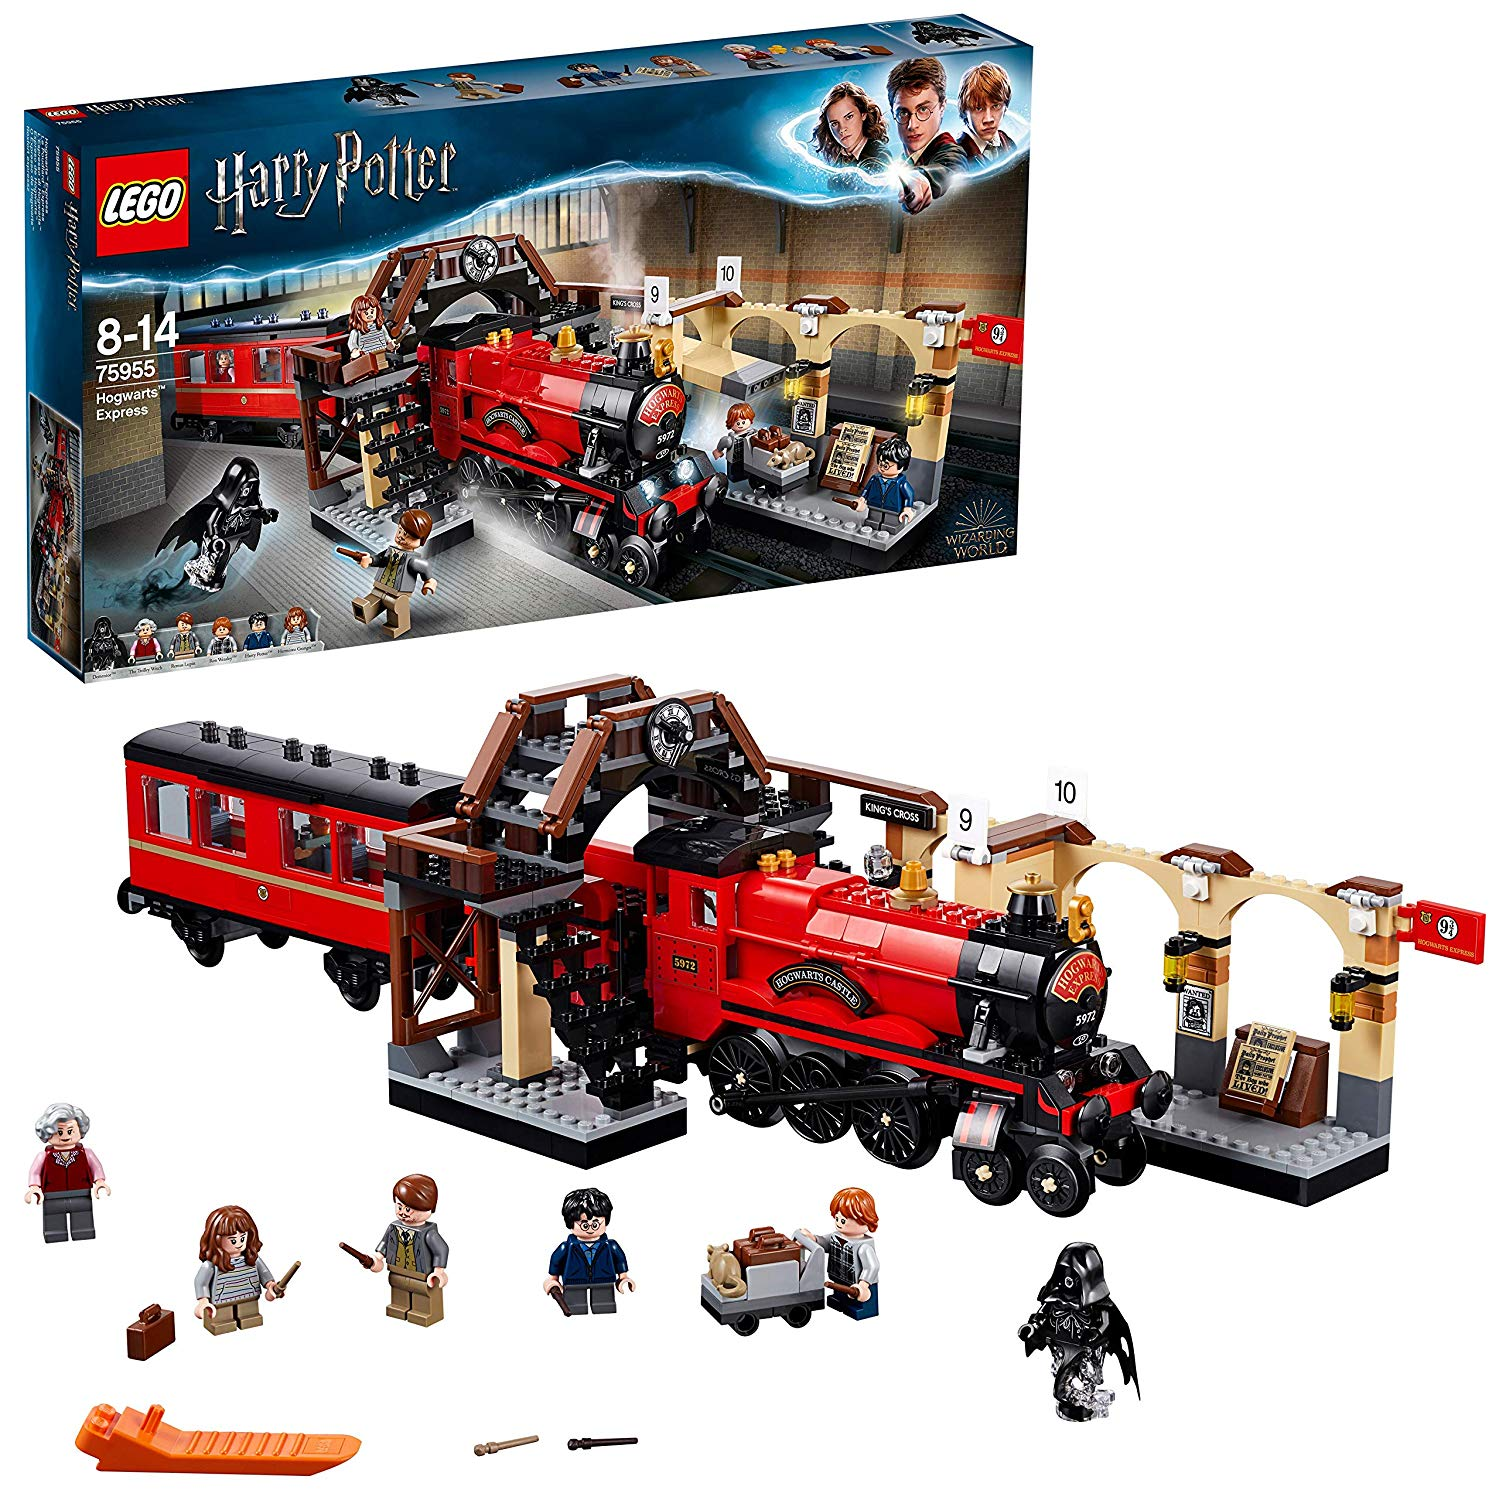 Harry Potter Lego - Hogwarts Express Playset